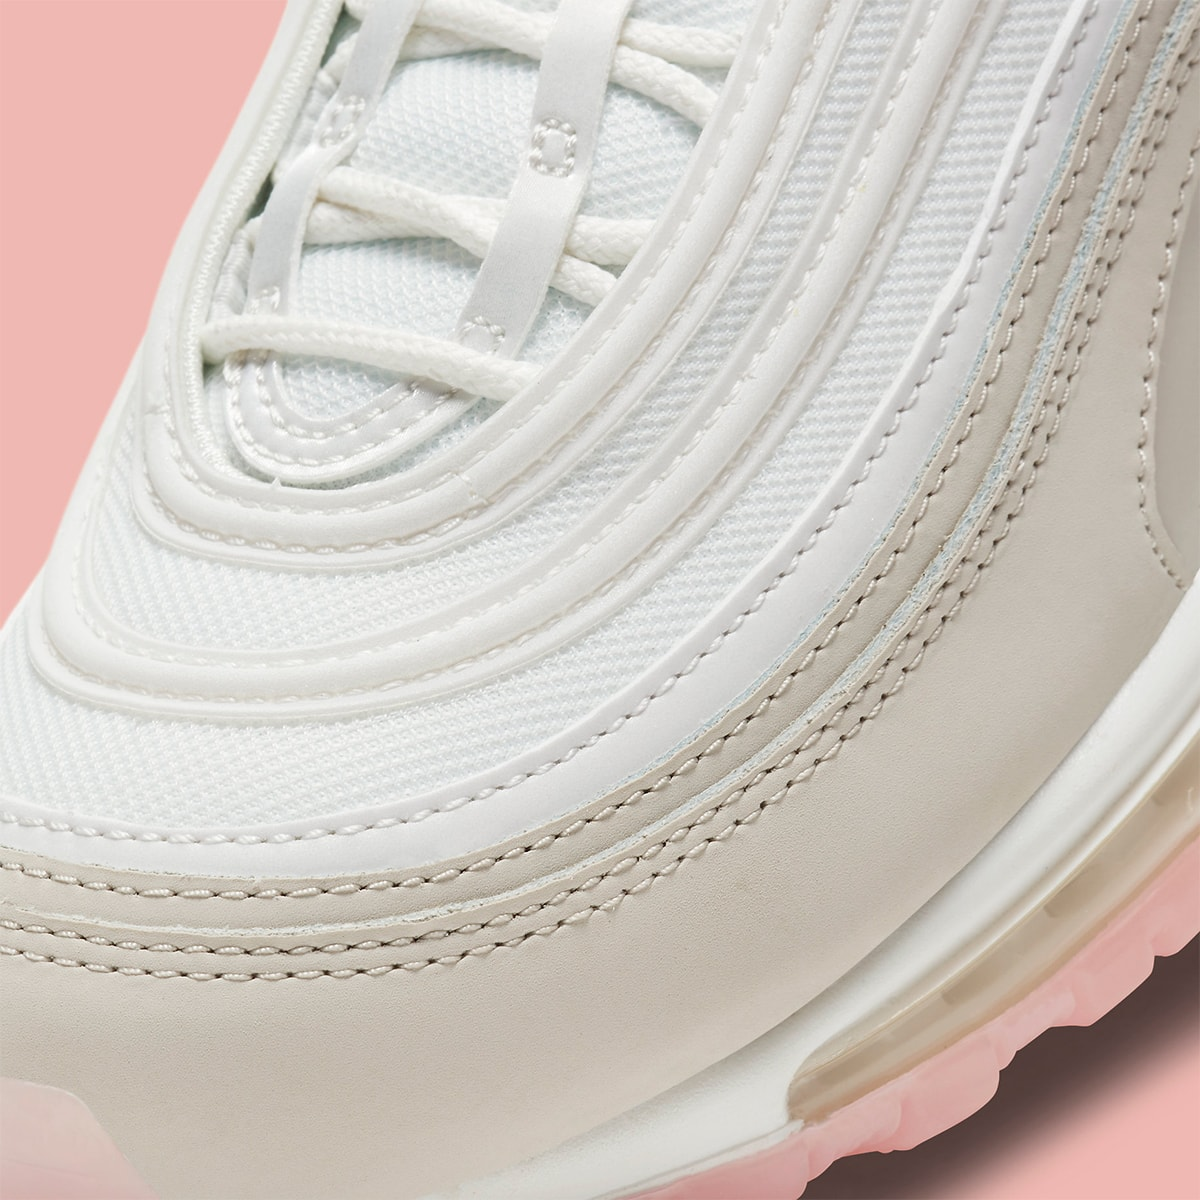 air max 97 white and pink